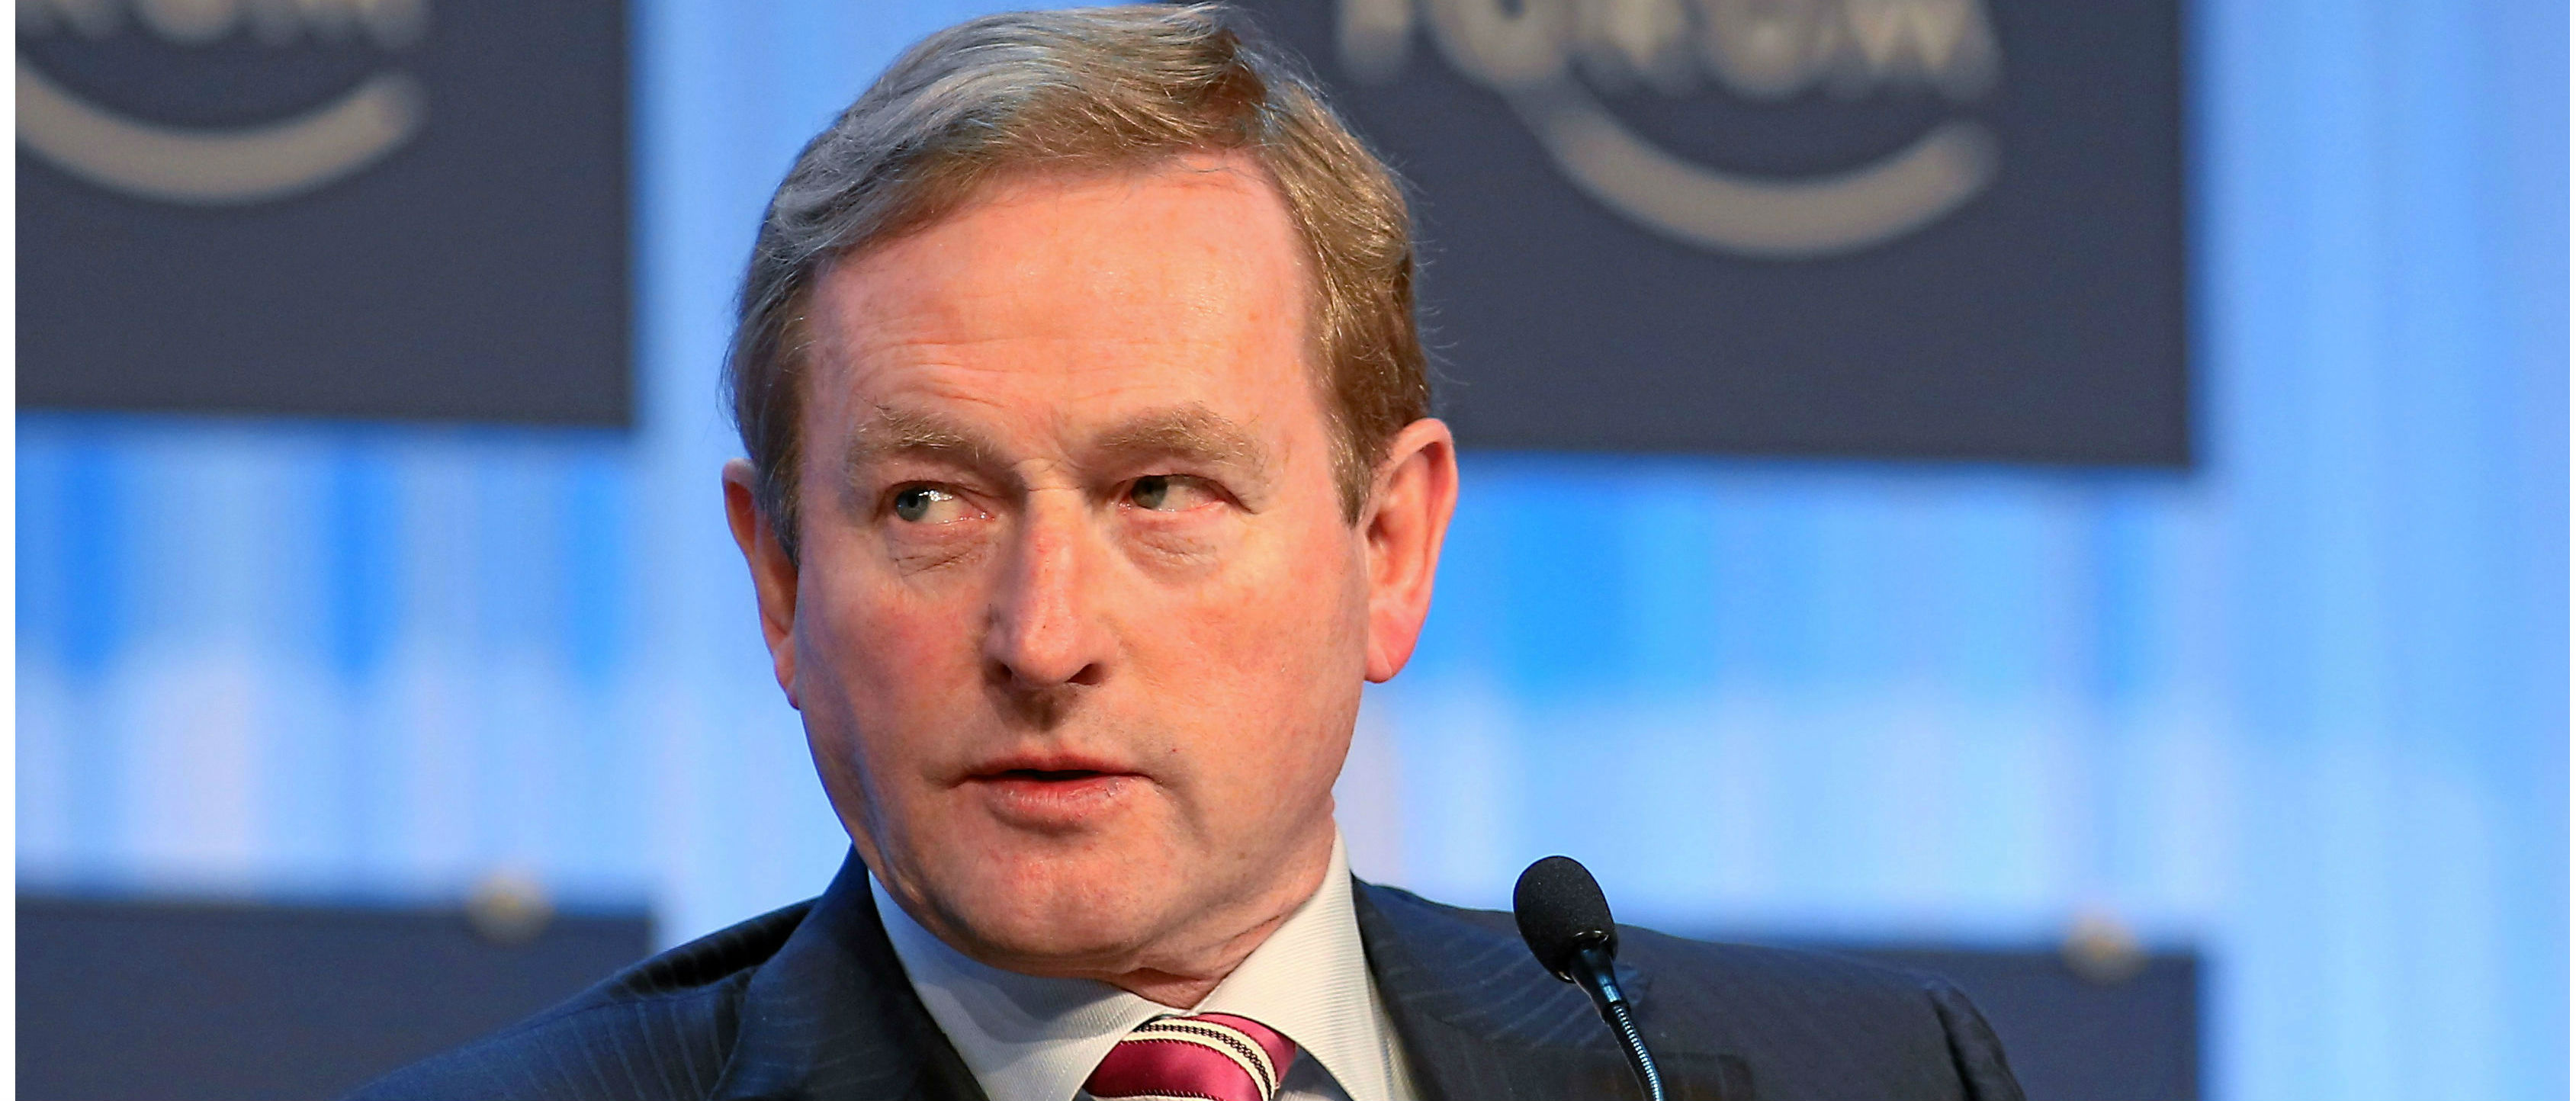 Enda Kenny Holds Meeting Against Any Terror Threat